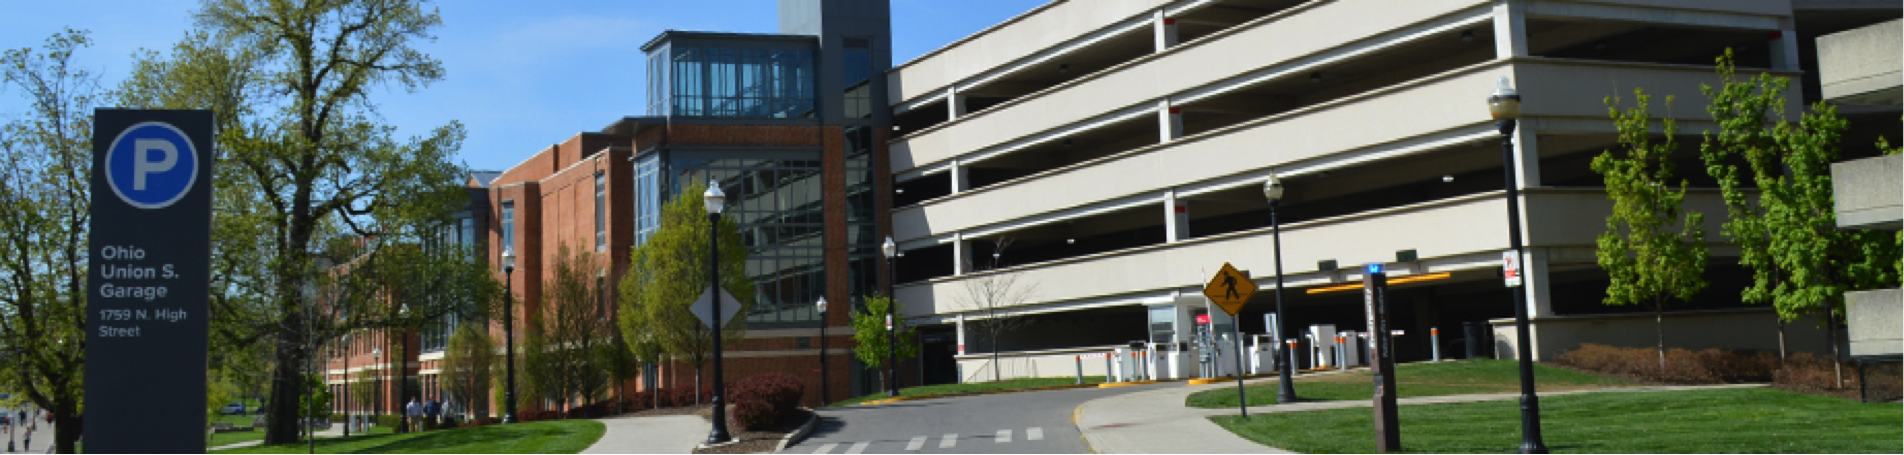 Image of the Ohio Union South Parking Garage